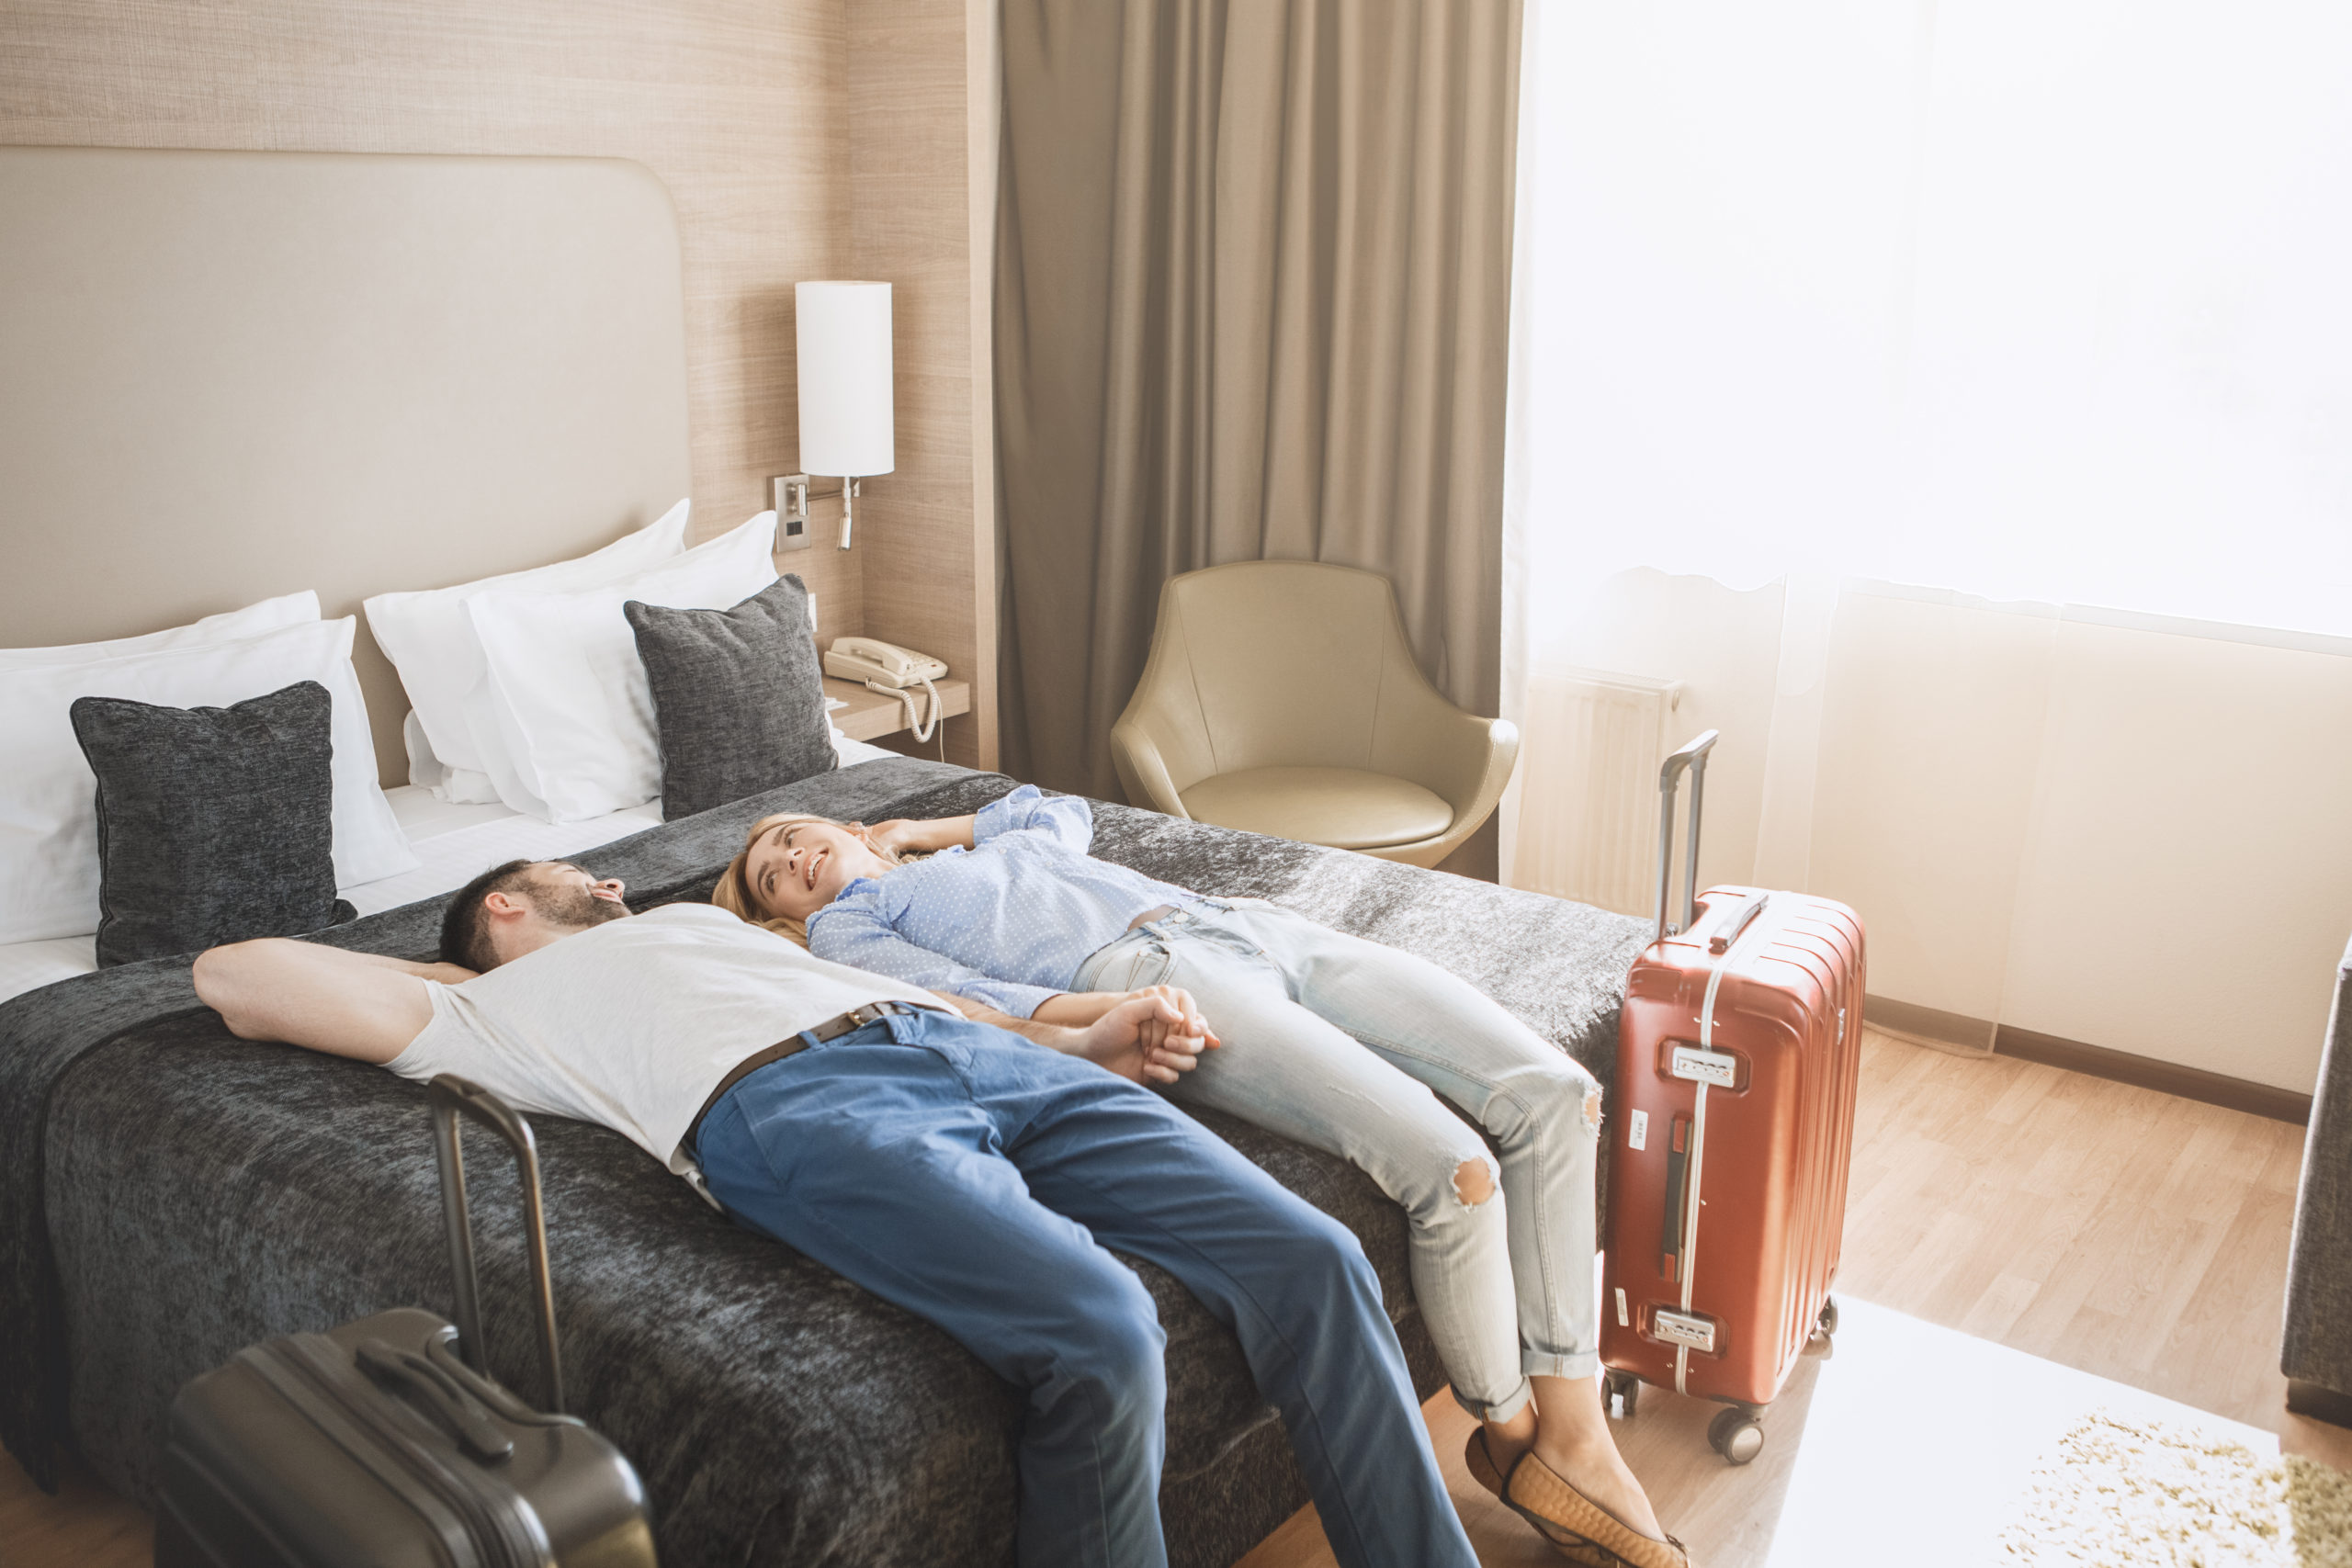 commercial-and-hospitality-Design-by-MDfxcouple-relaxing-on-bed-in-hotel-bedroom-with-air-purification-system-